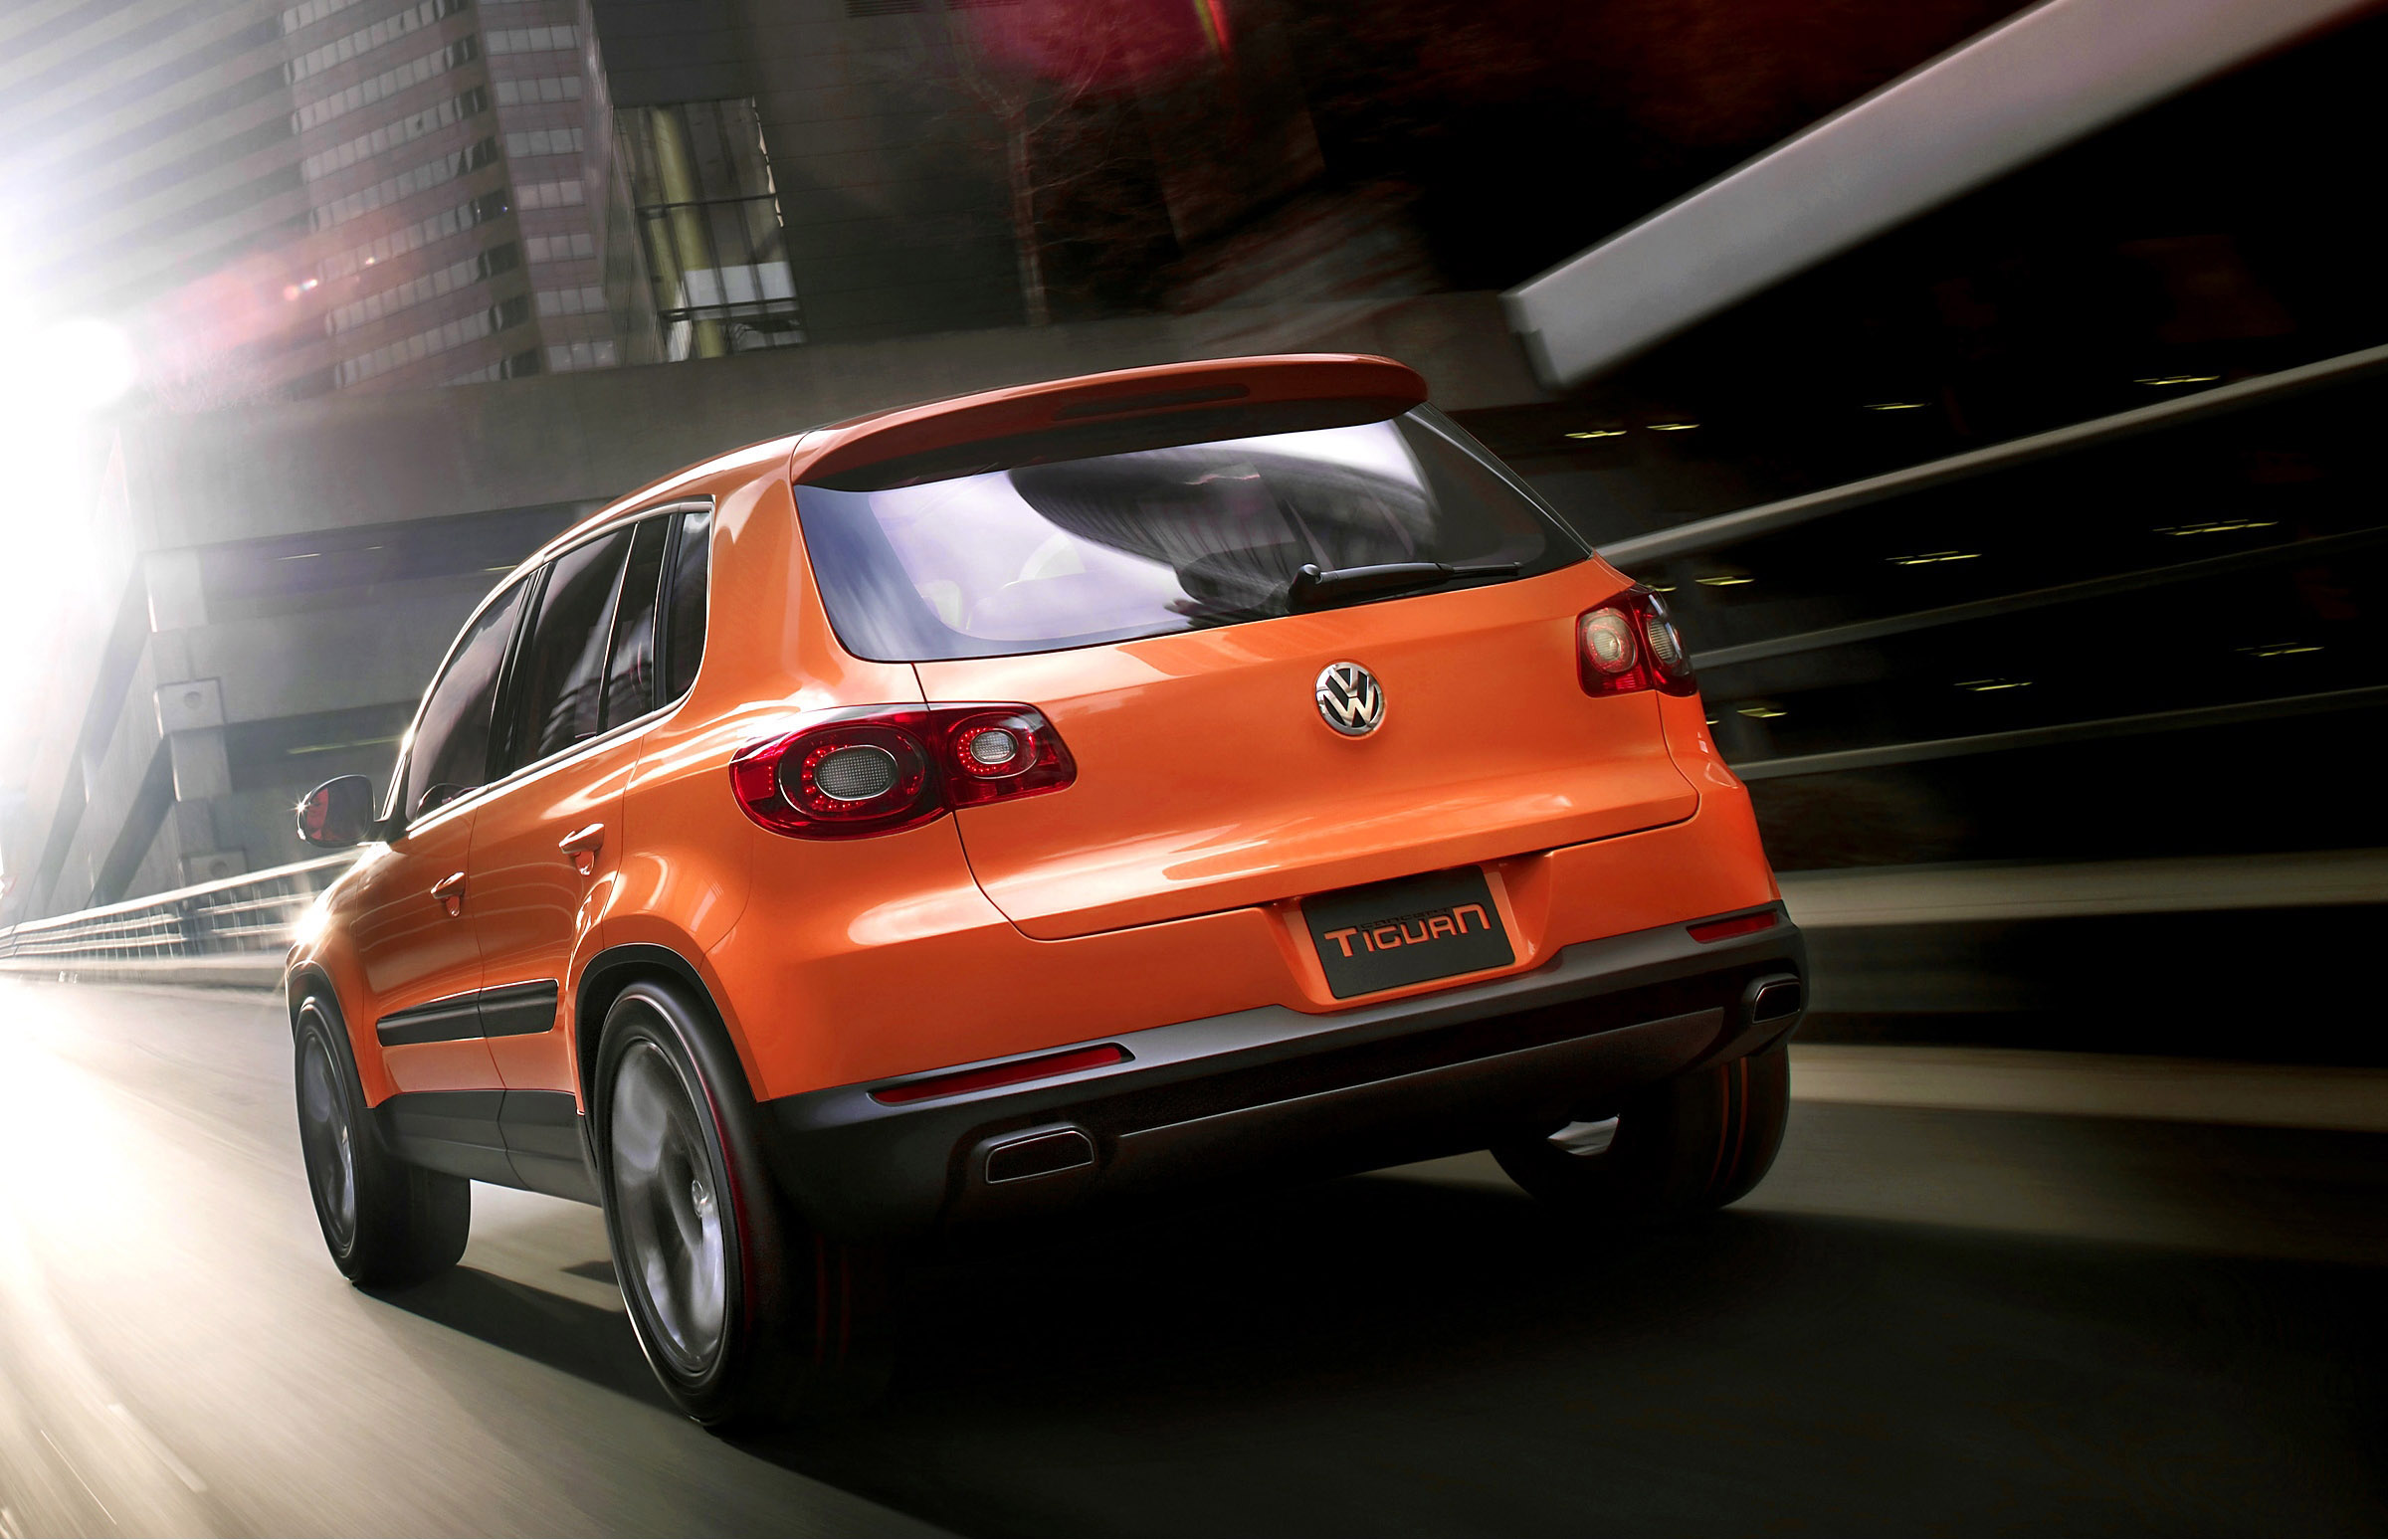 Volkswagen Tiguan Concept photo #7